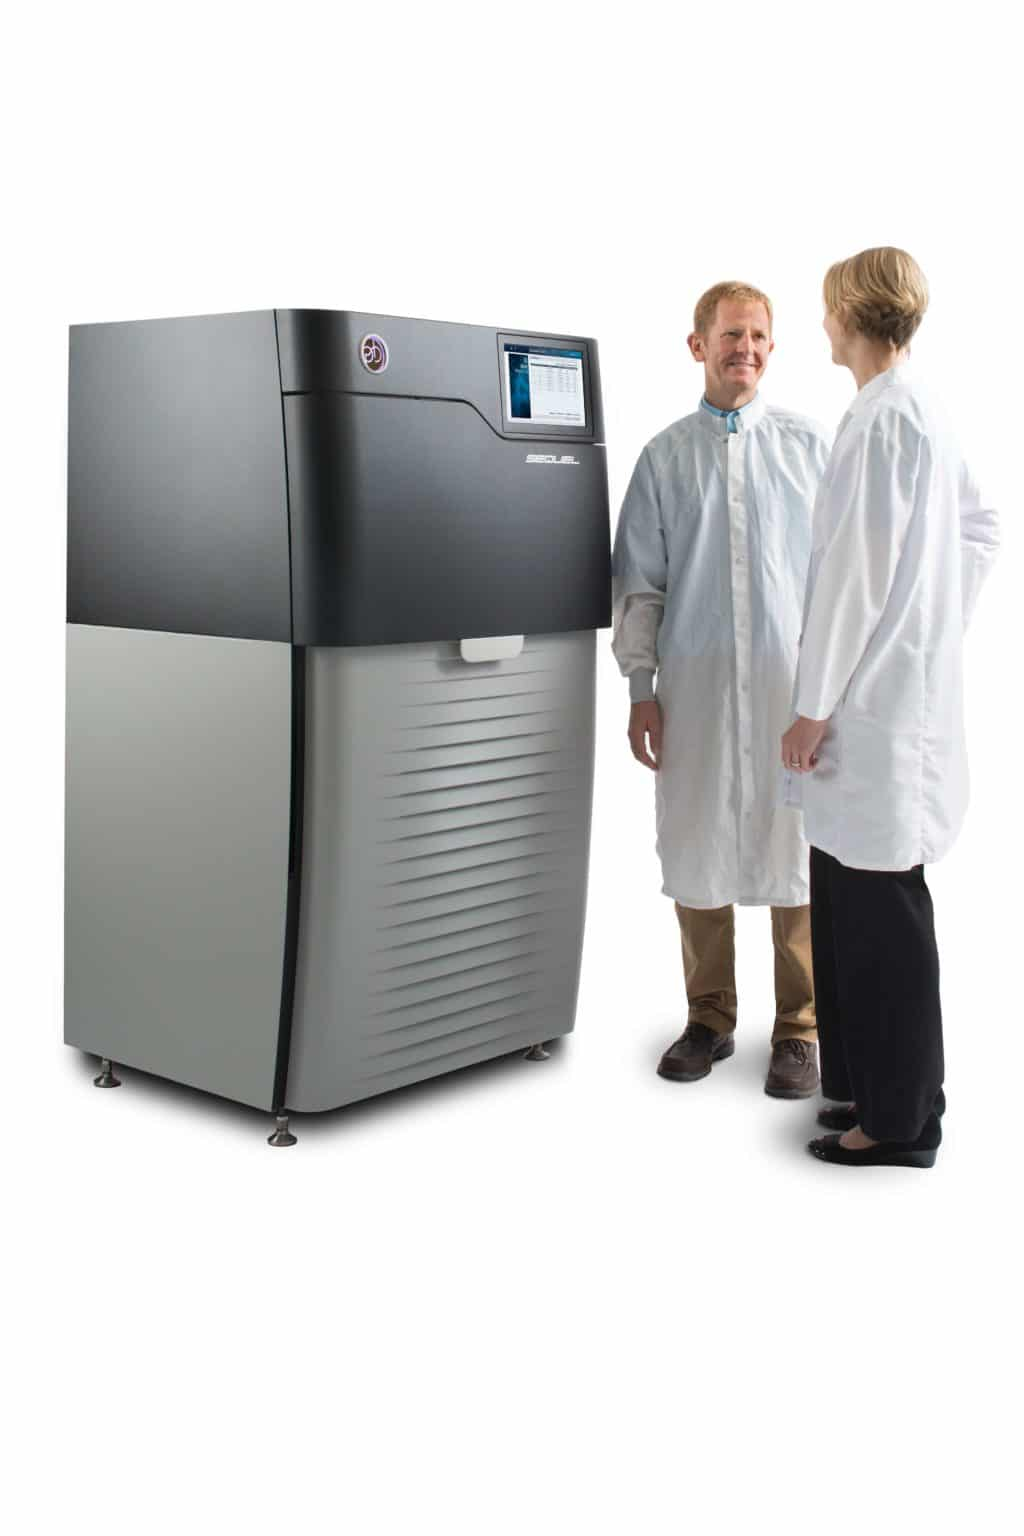 PacBio Sequel – Instrument